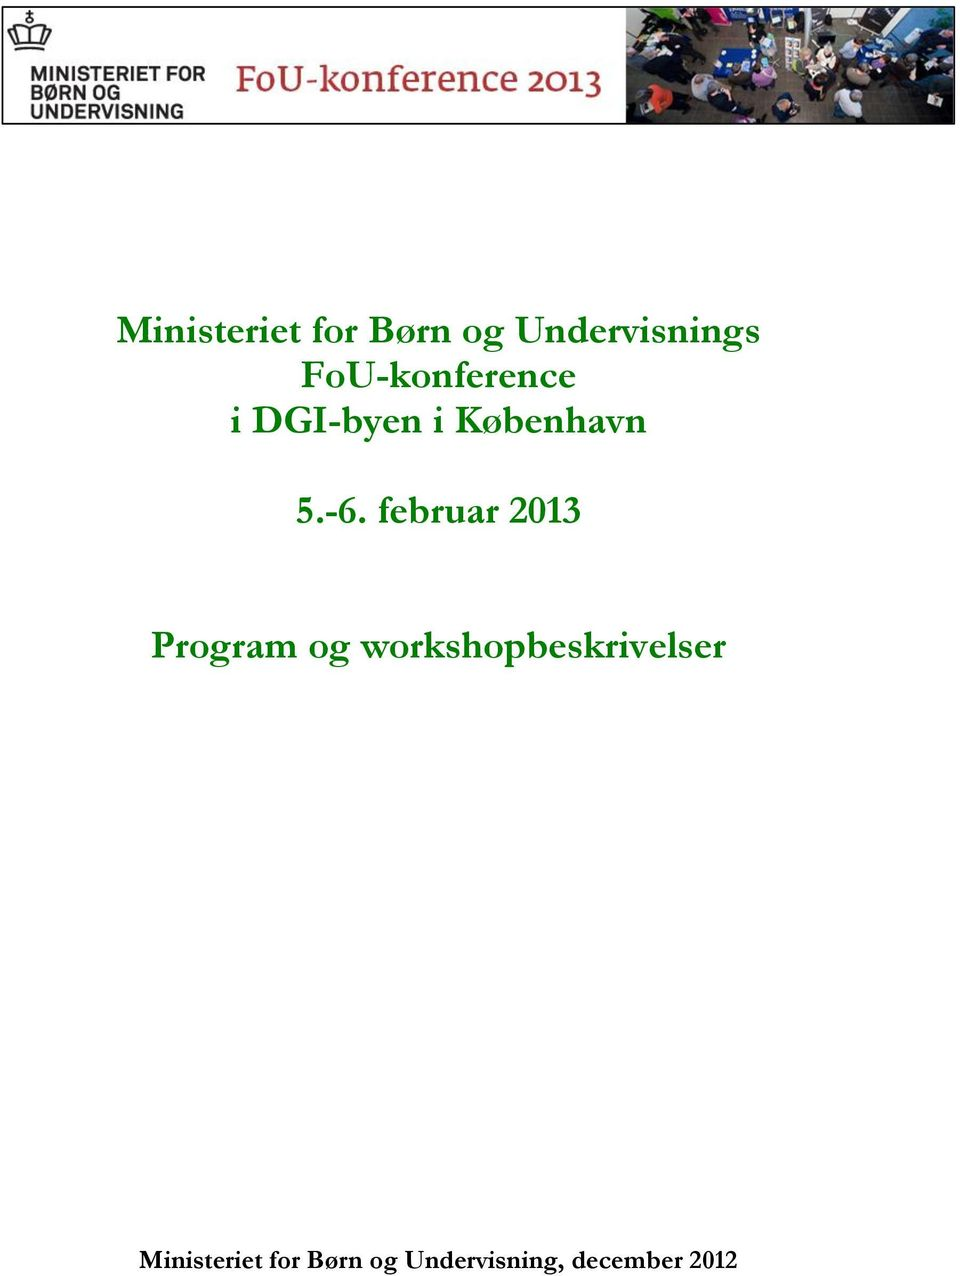 februar 2013 Program og workshopbeskrivelser